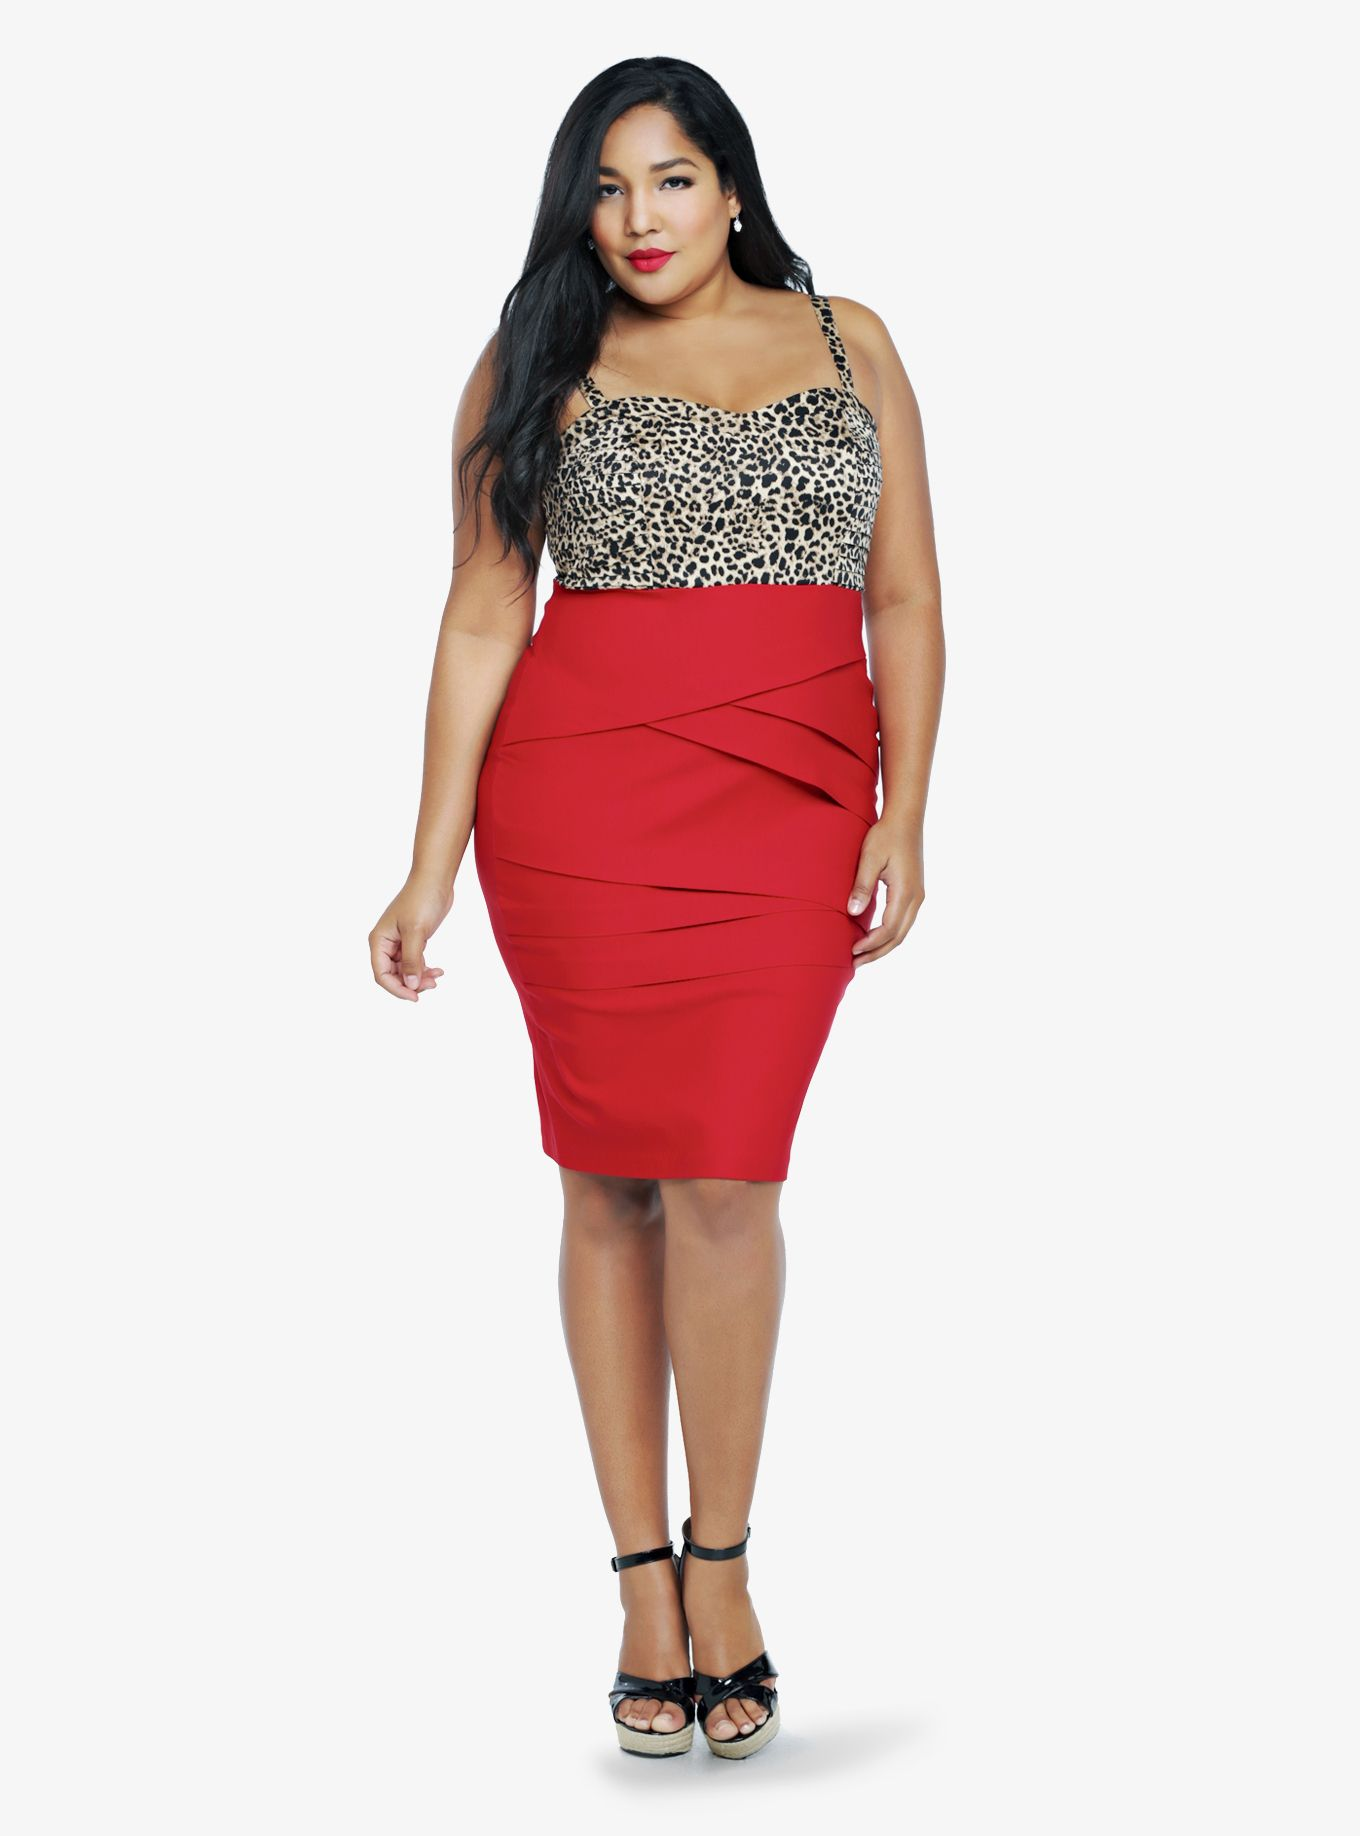 Is there anything sexier than leopard paired with traffic-stopping red?!